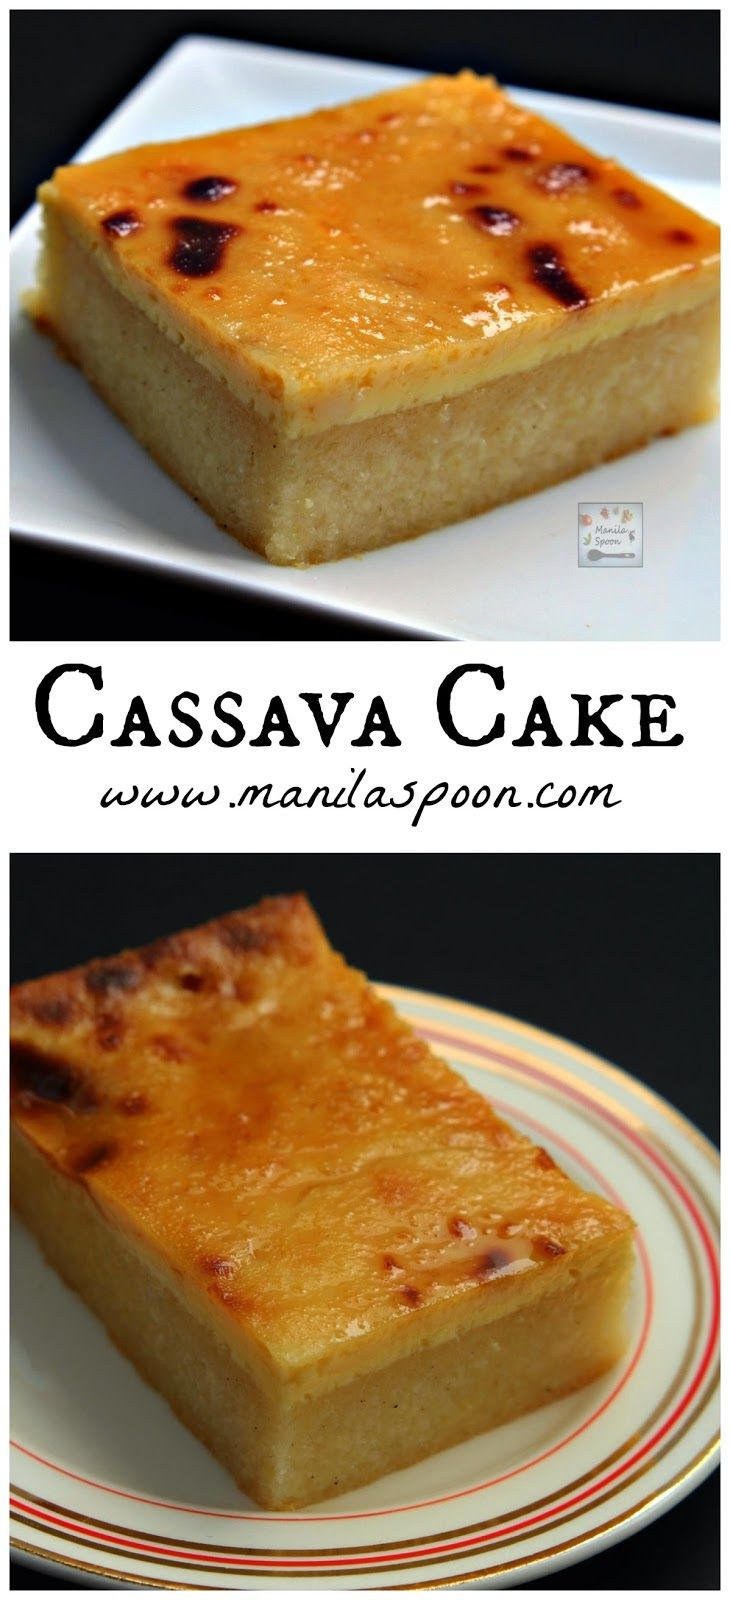 With A Soft And Spongy Texture Flavored With Coconut And Condensed Milk And Then Topped With A Creamy Vanilla Cus Diy Food Recipes Cassava Cake Asian Desserts